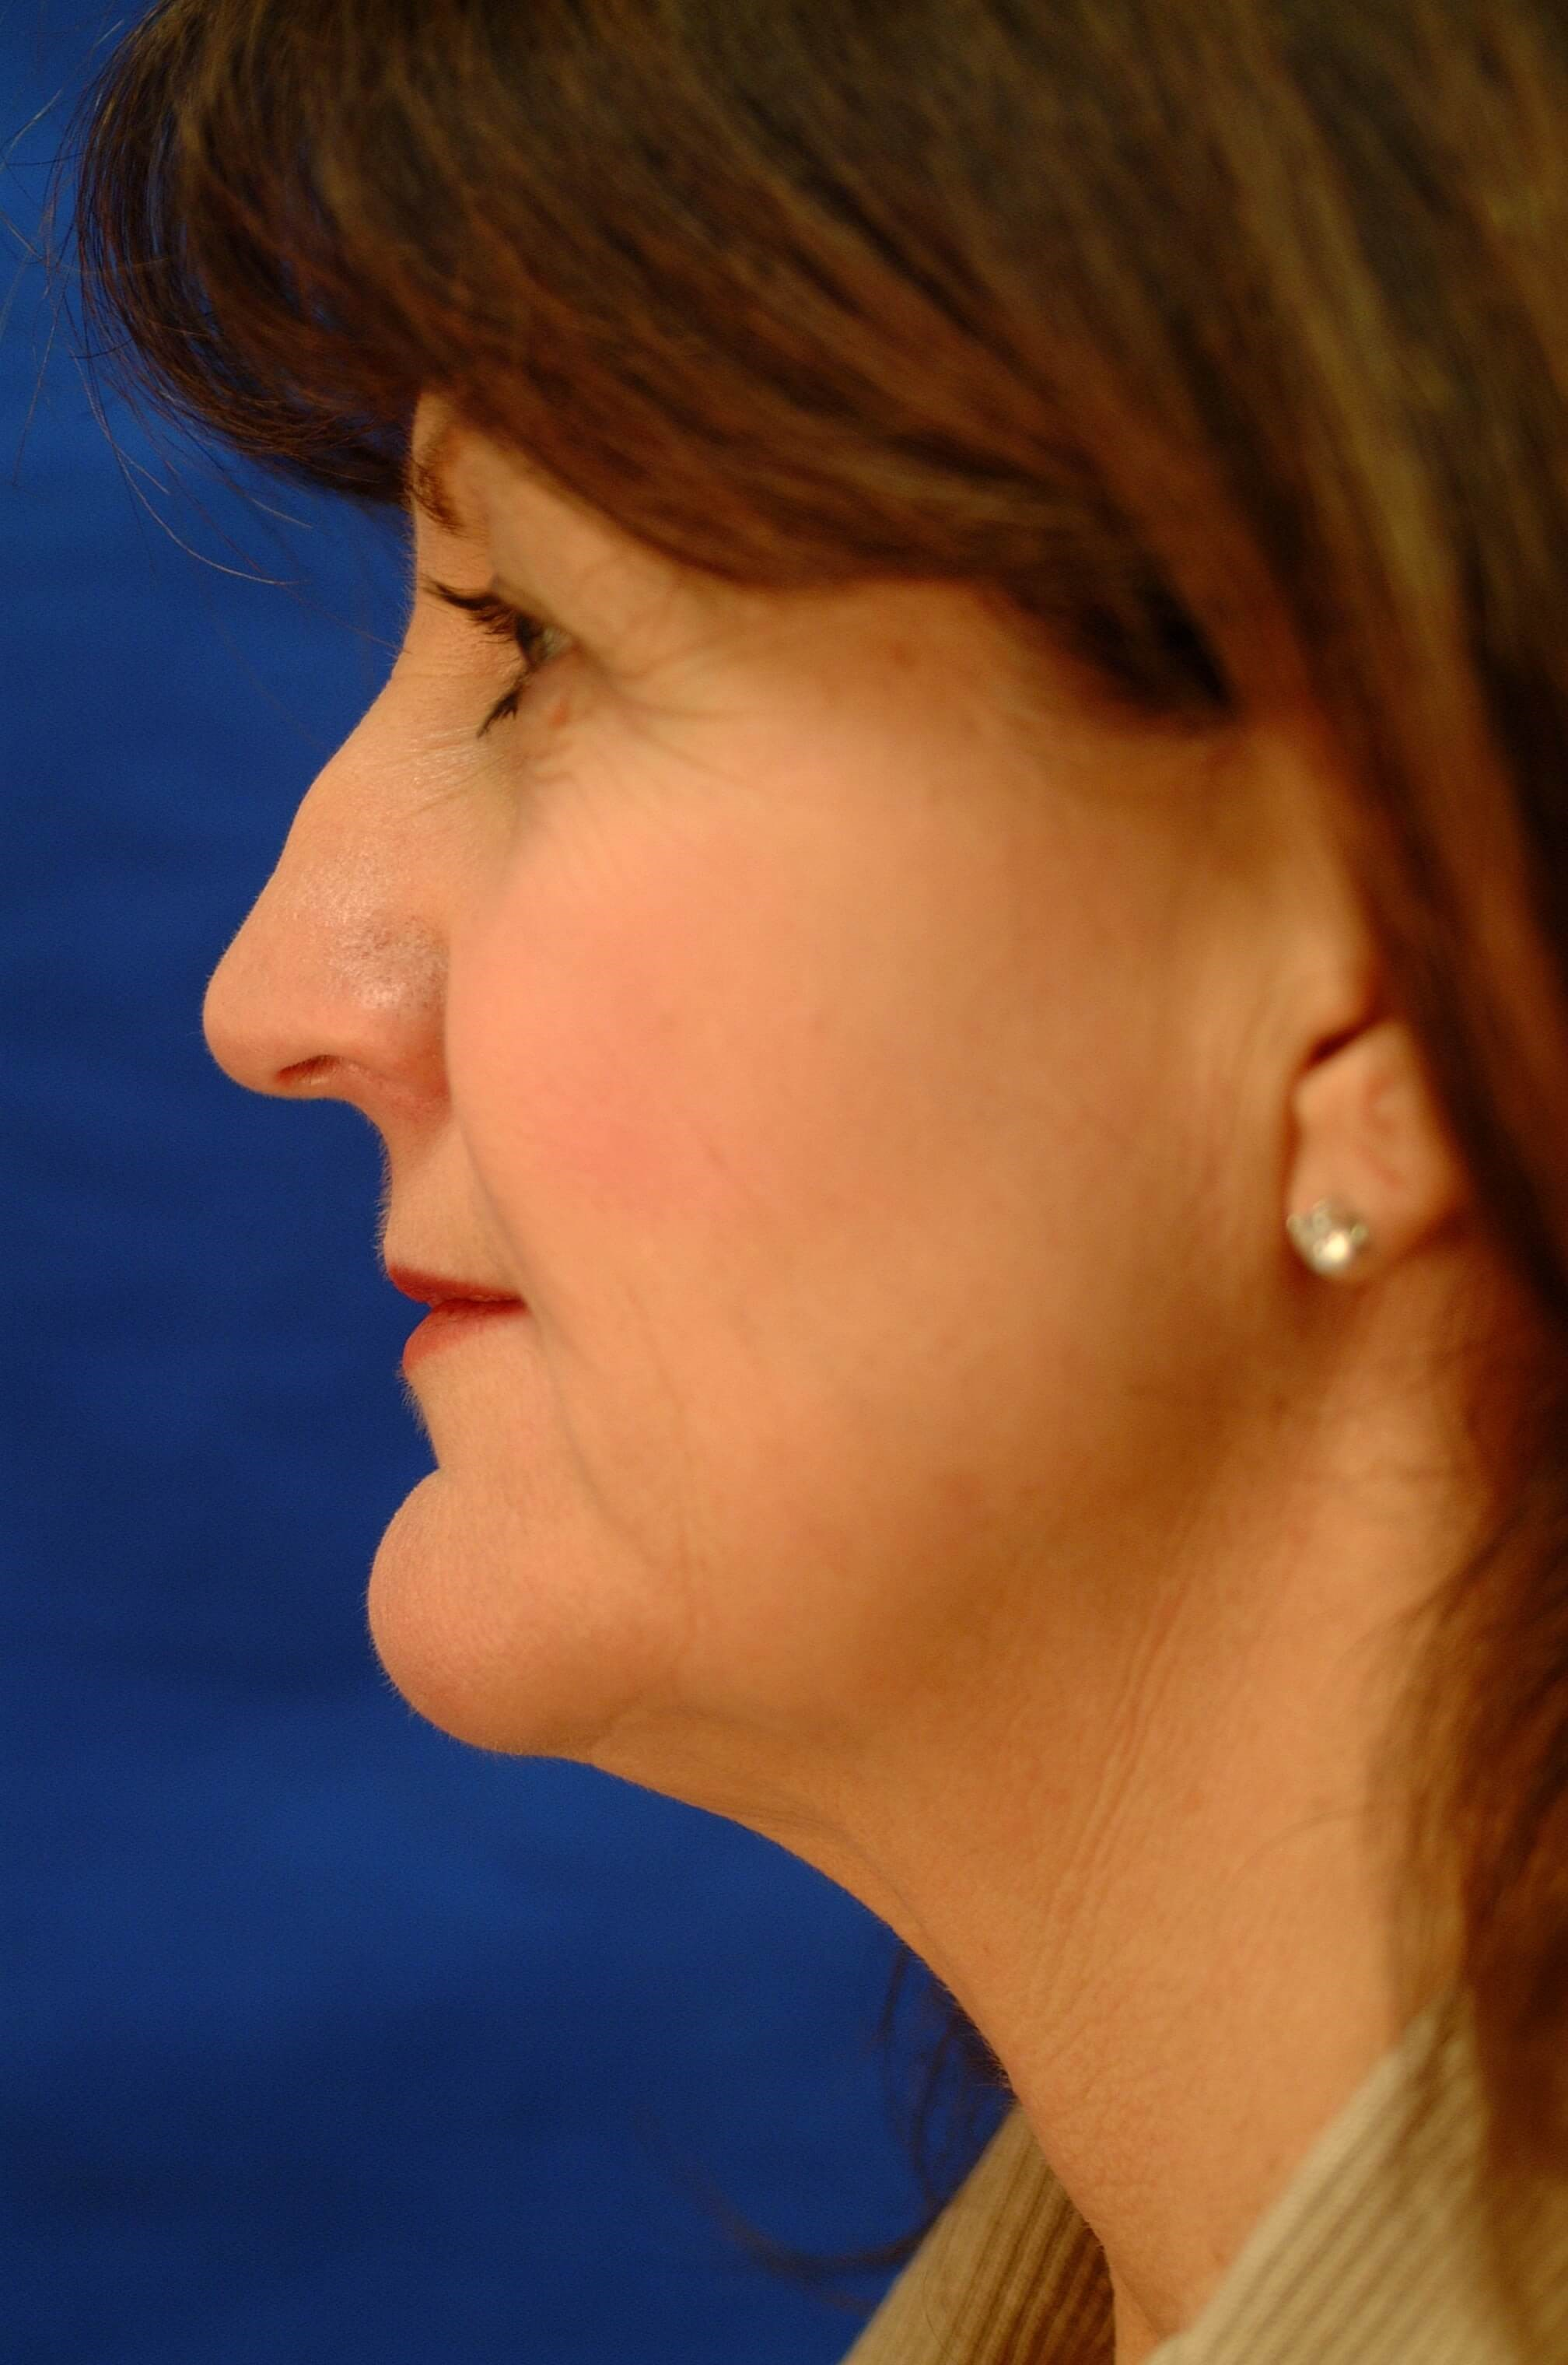 Newport Facelift Rhinoplasty Side View Before